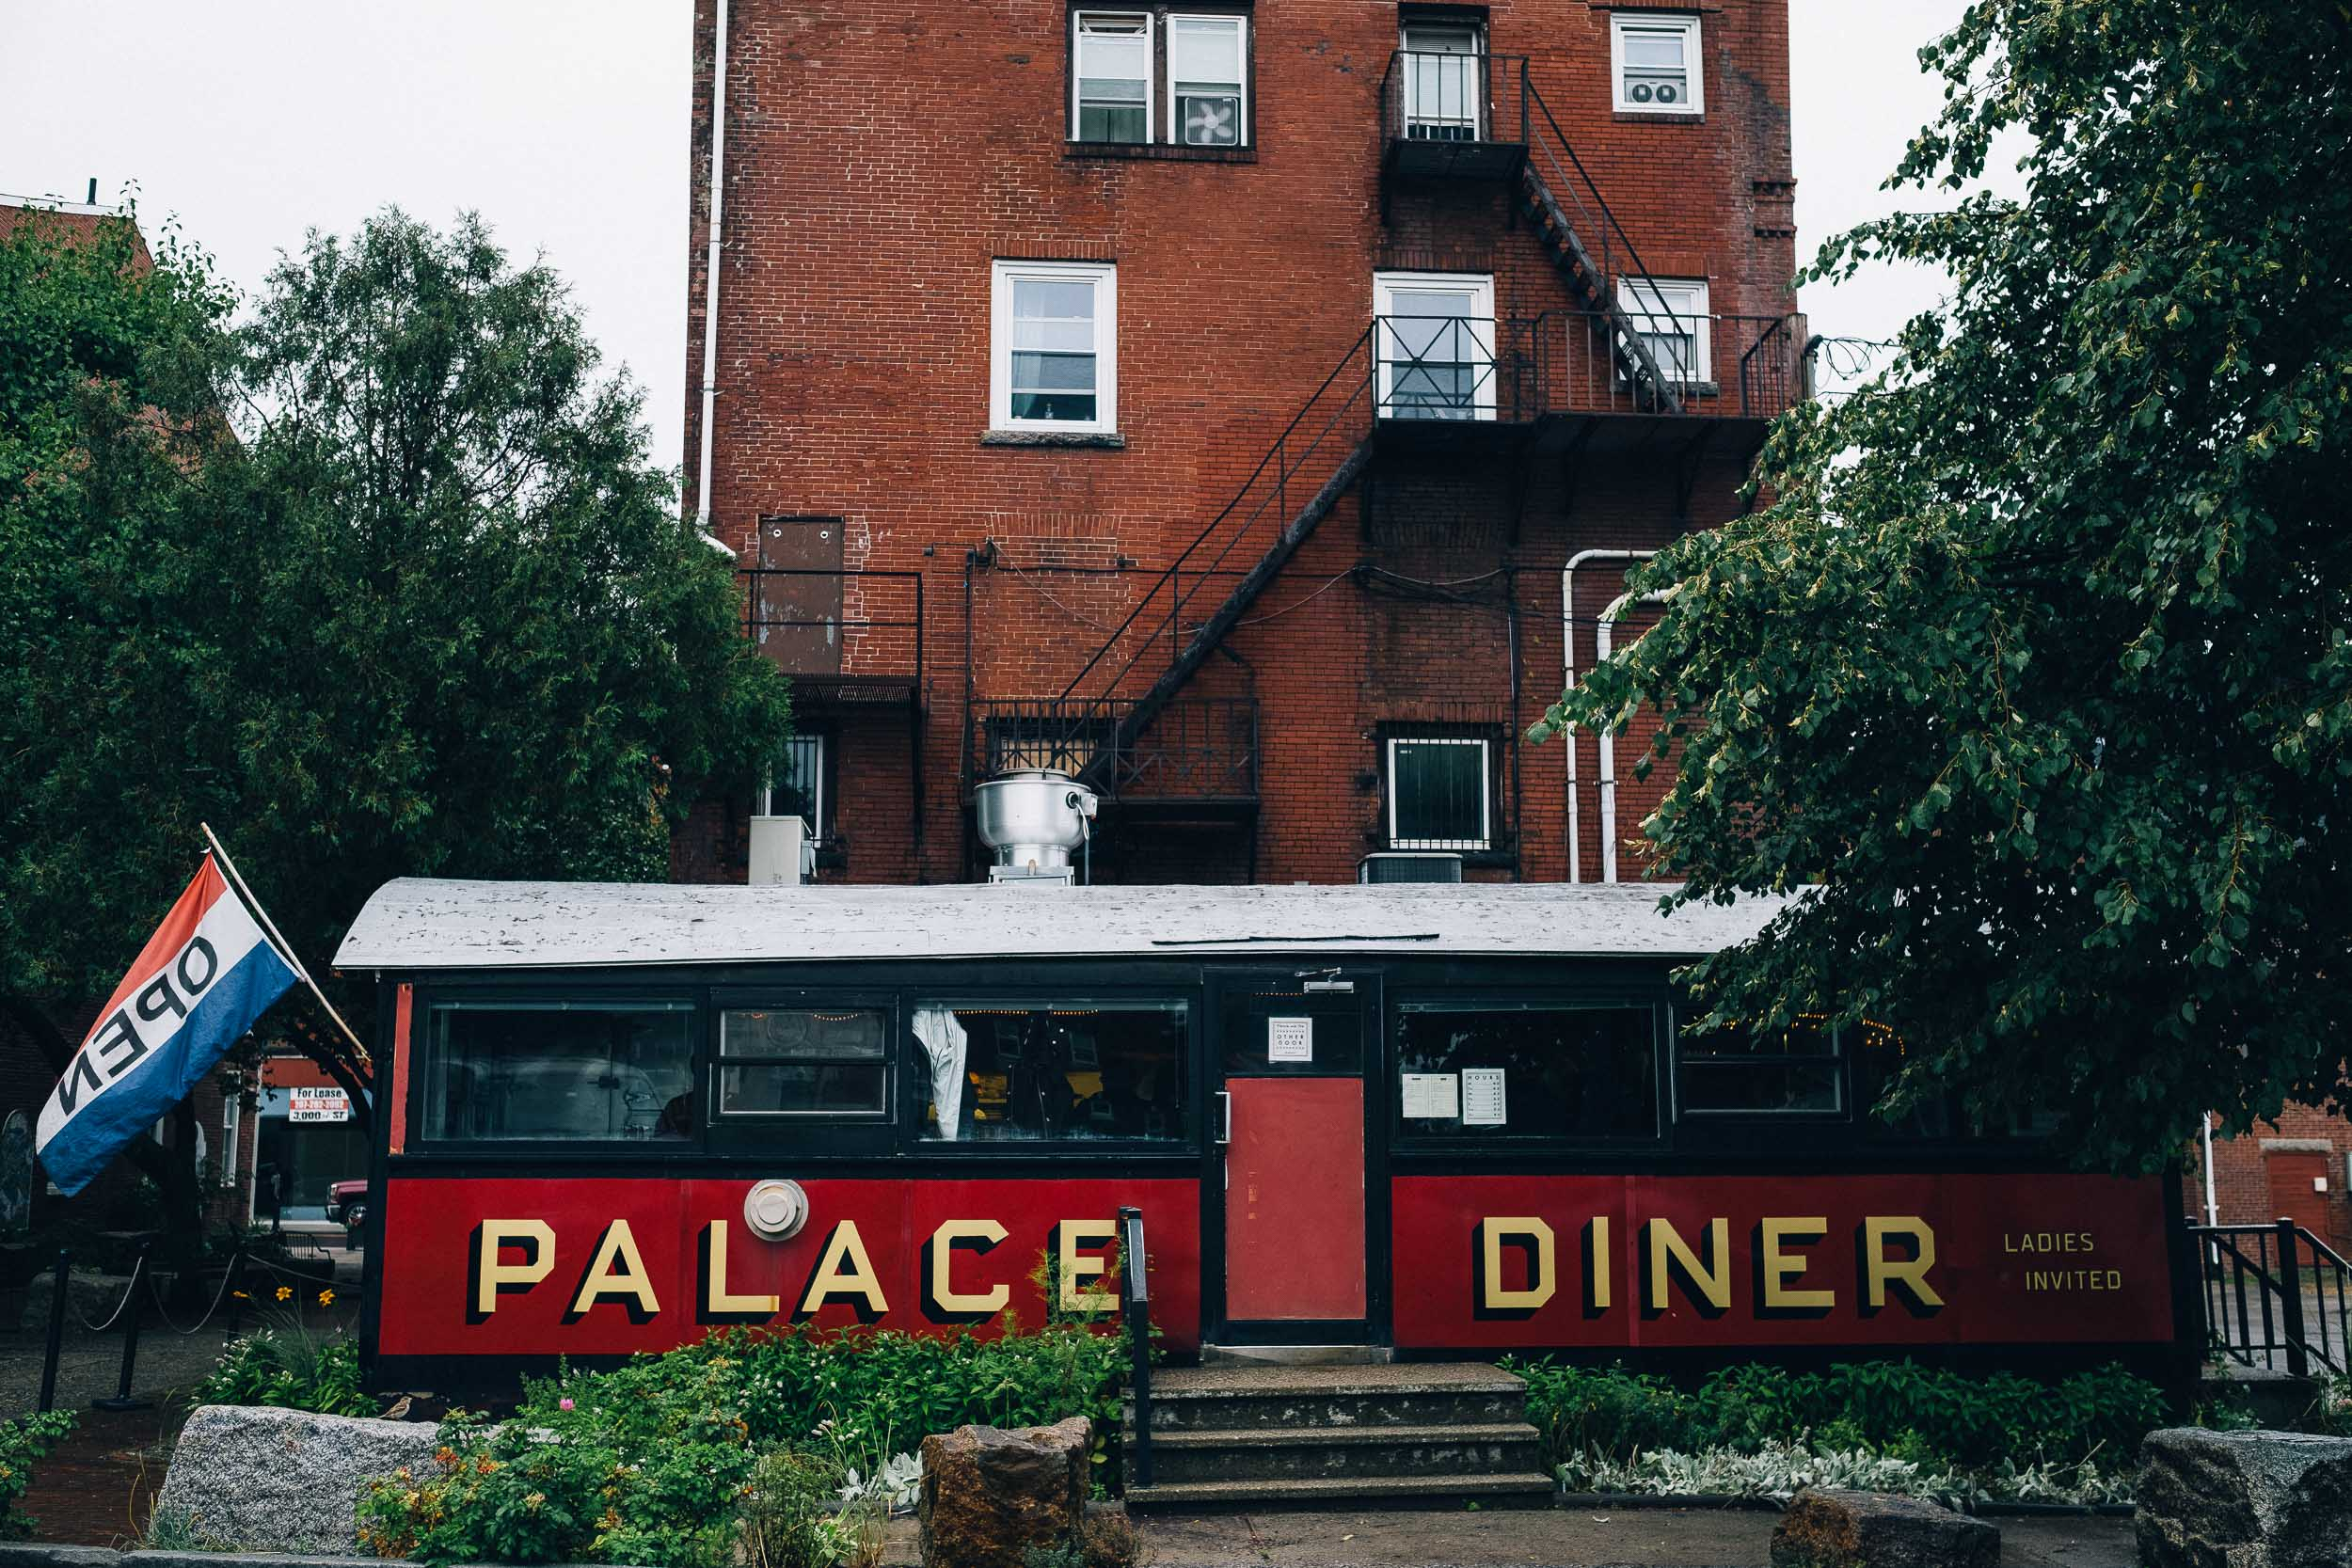 Palace Diner in Biddeford, Maine